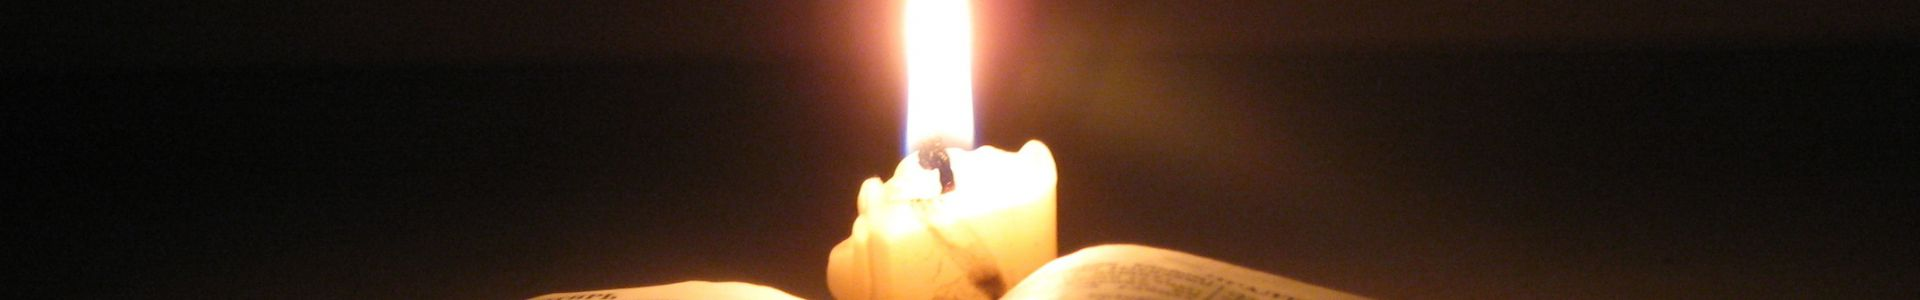 bible-and-candle